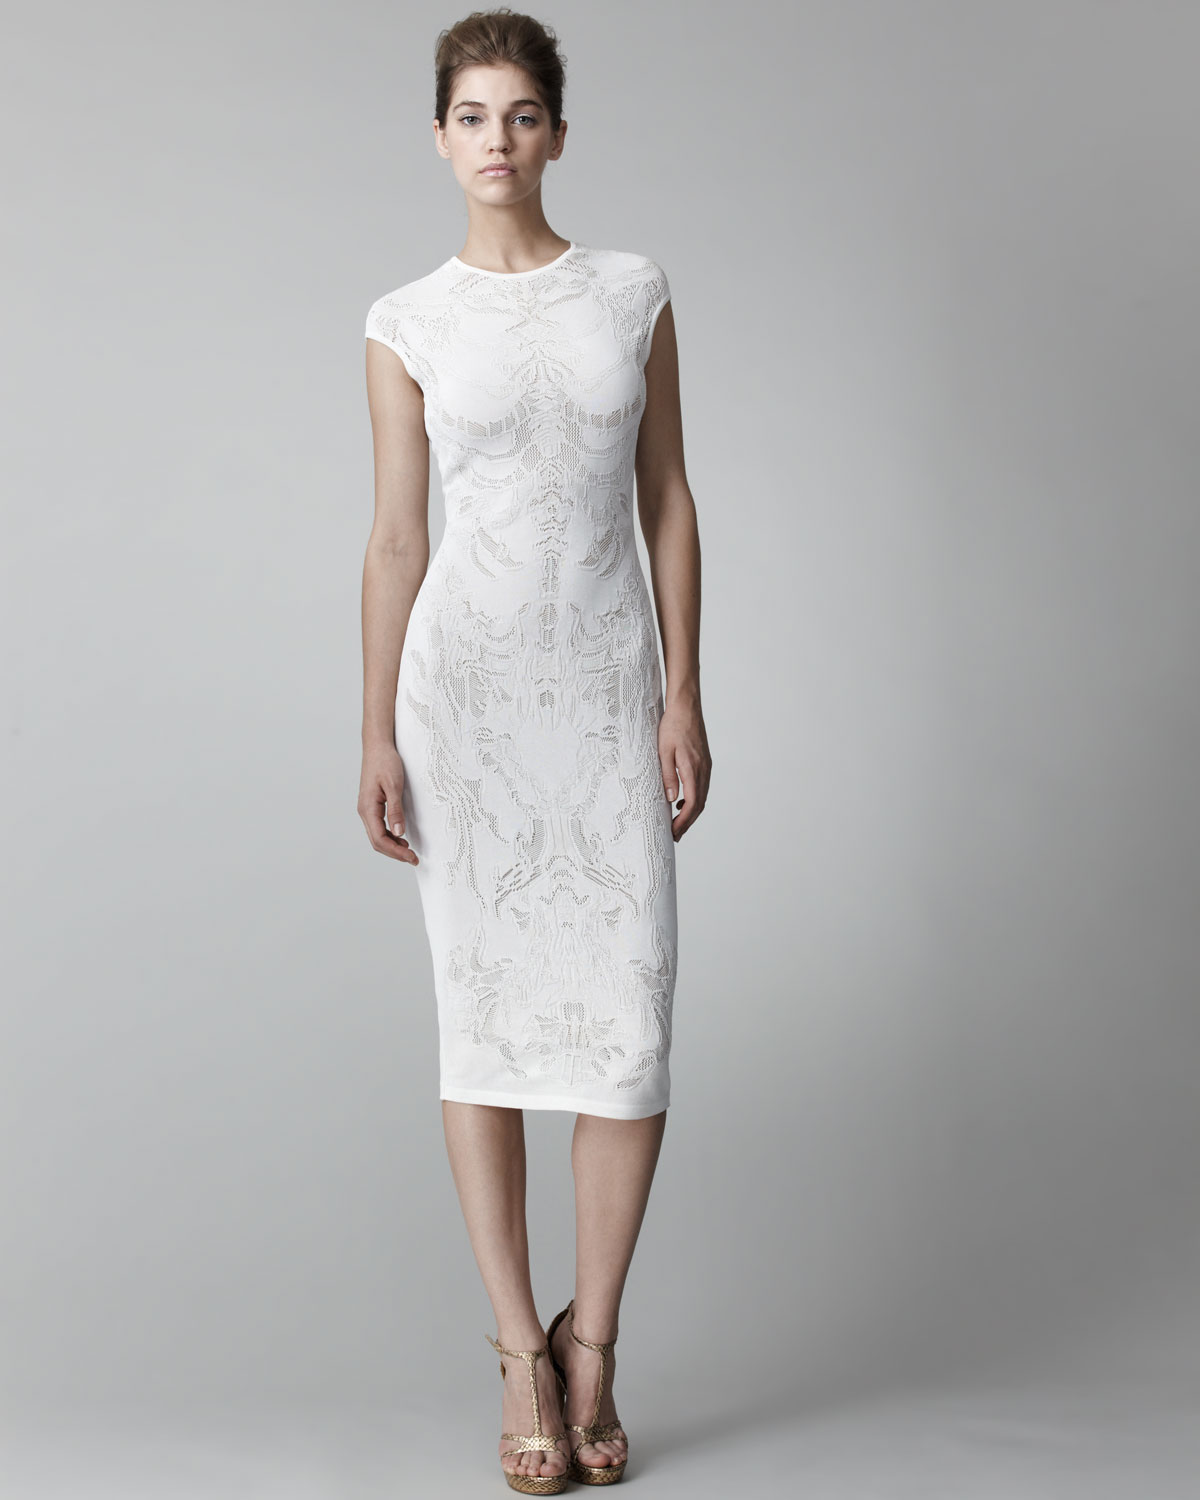 Free shipping and returns on dresses for women at settlements-cause.ml Browse bridesmaids, cocktail & party, maxi, vacation, wedding guest and more in the latest colors and prints. Shop by length, style, color and more from brands like Eliza J, Topshop, Leith, Gal Meets Glam, & Free People.